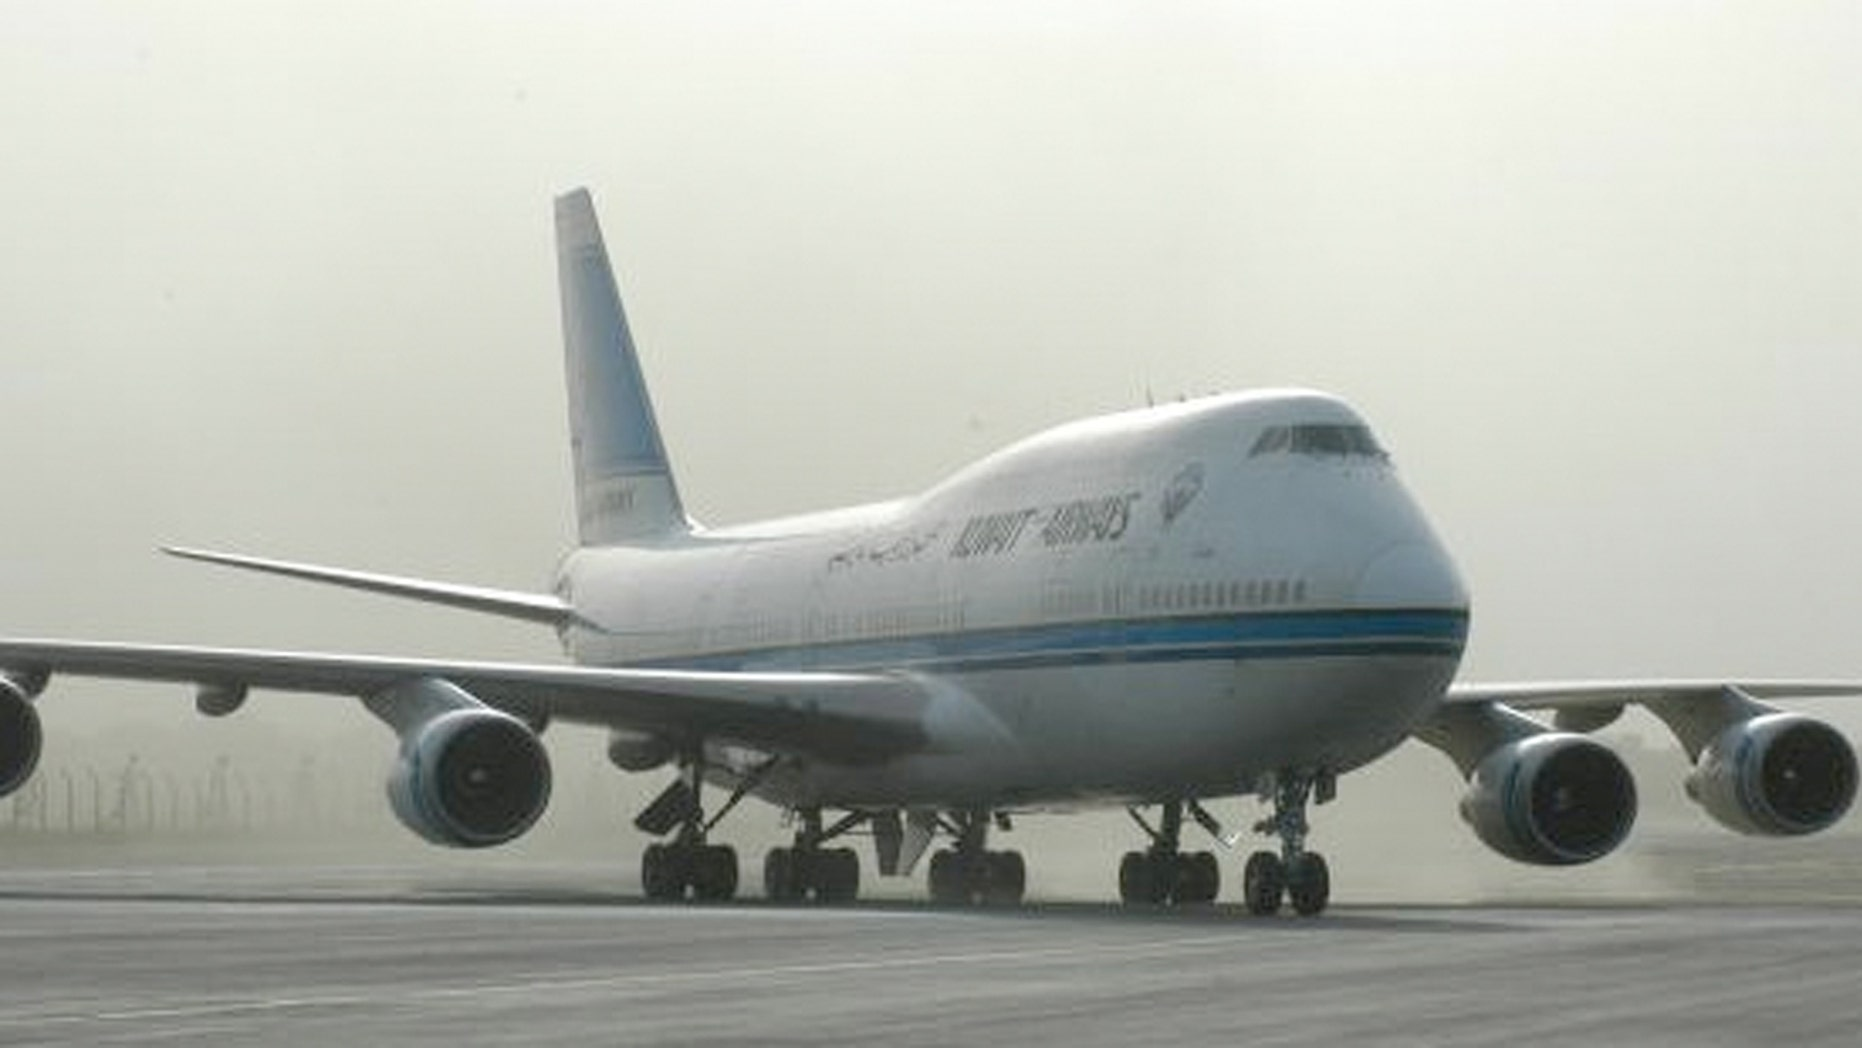 The US DOT says that Kuwait Airways is in violation by refusing to transport Israeli citizens to and from the U.S. and a third country that accepts Israeli citizens.